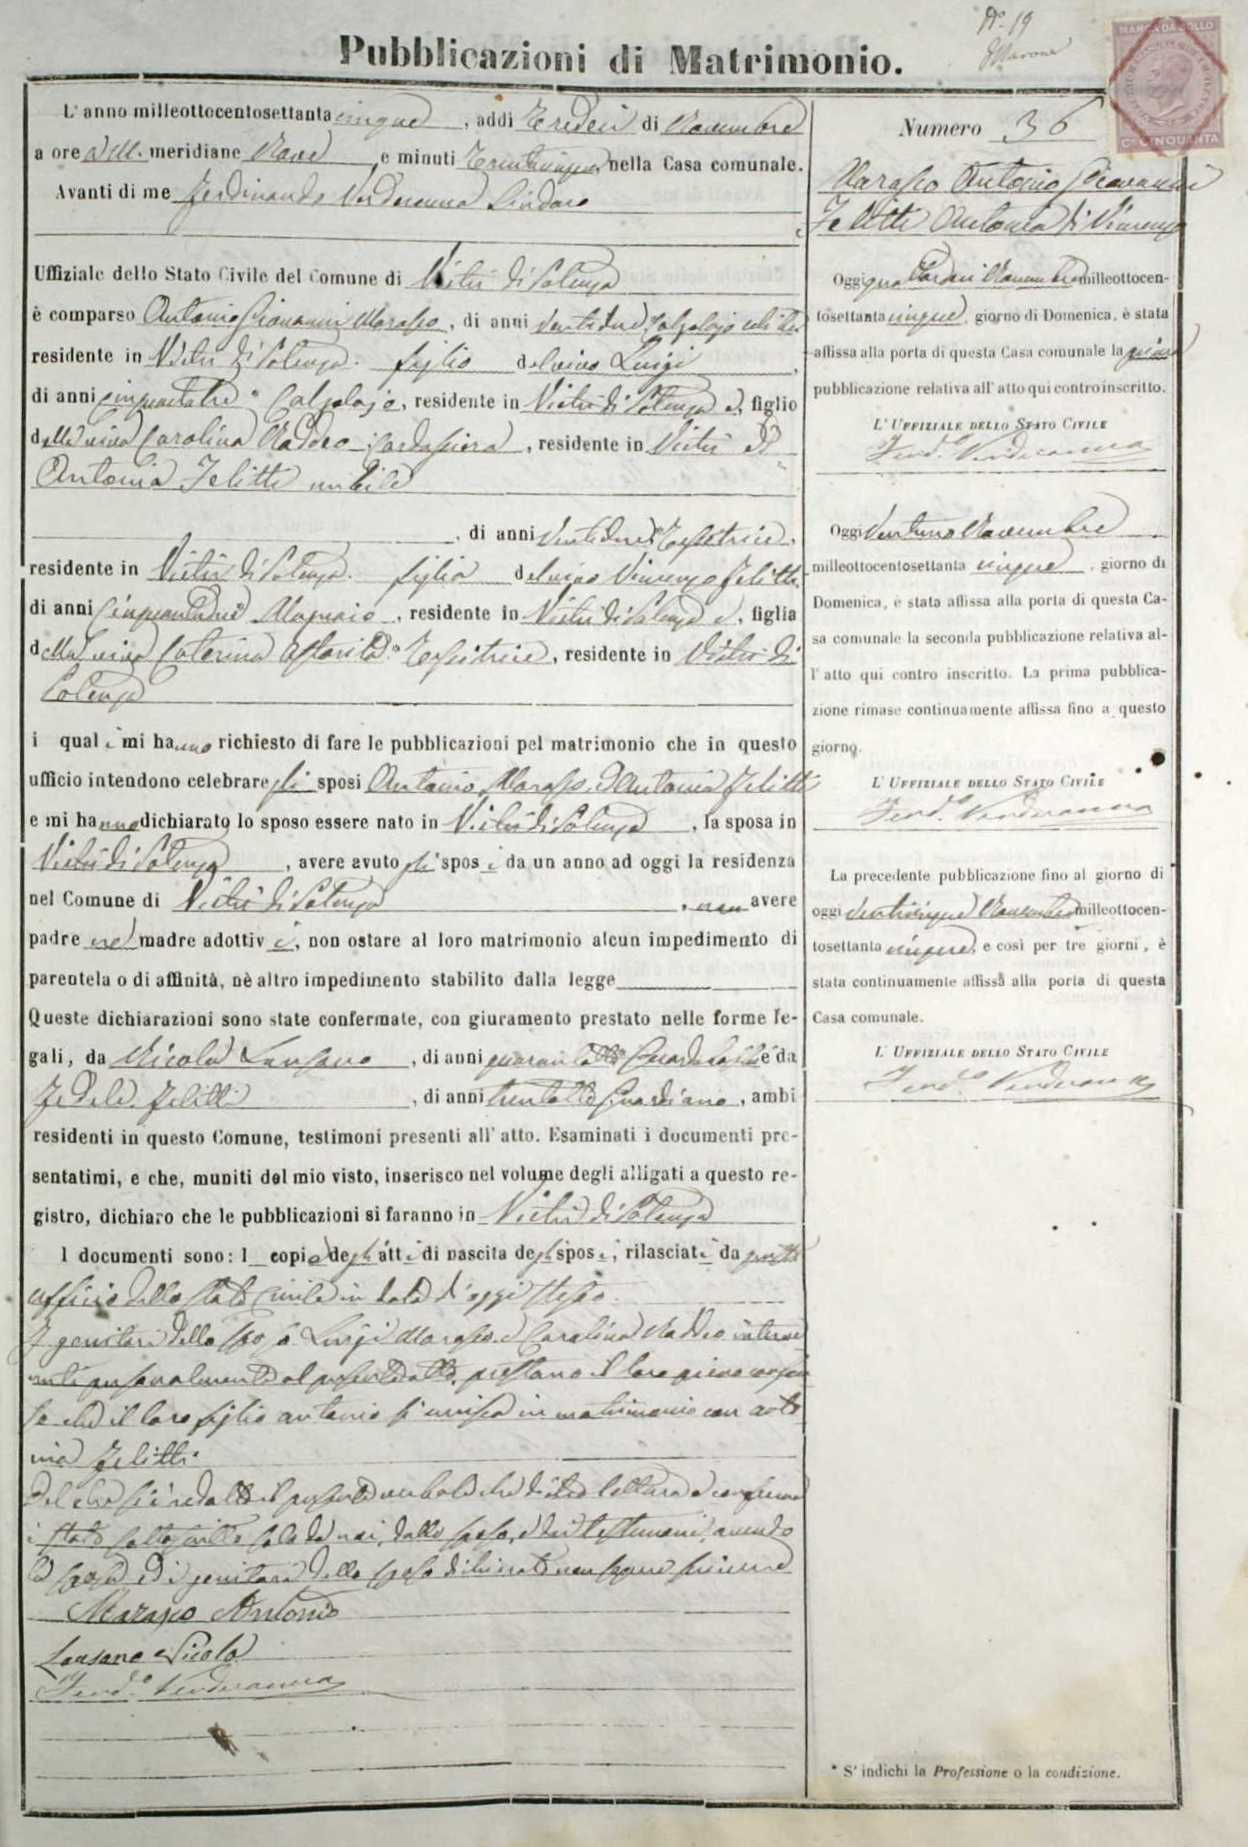 Antonio Marasco and Antonia Felitto marriage license cropped.jpg